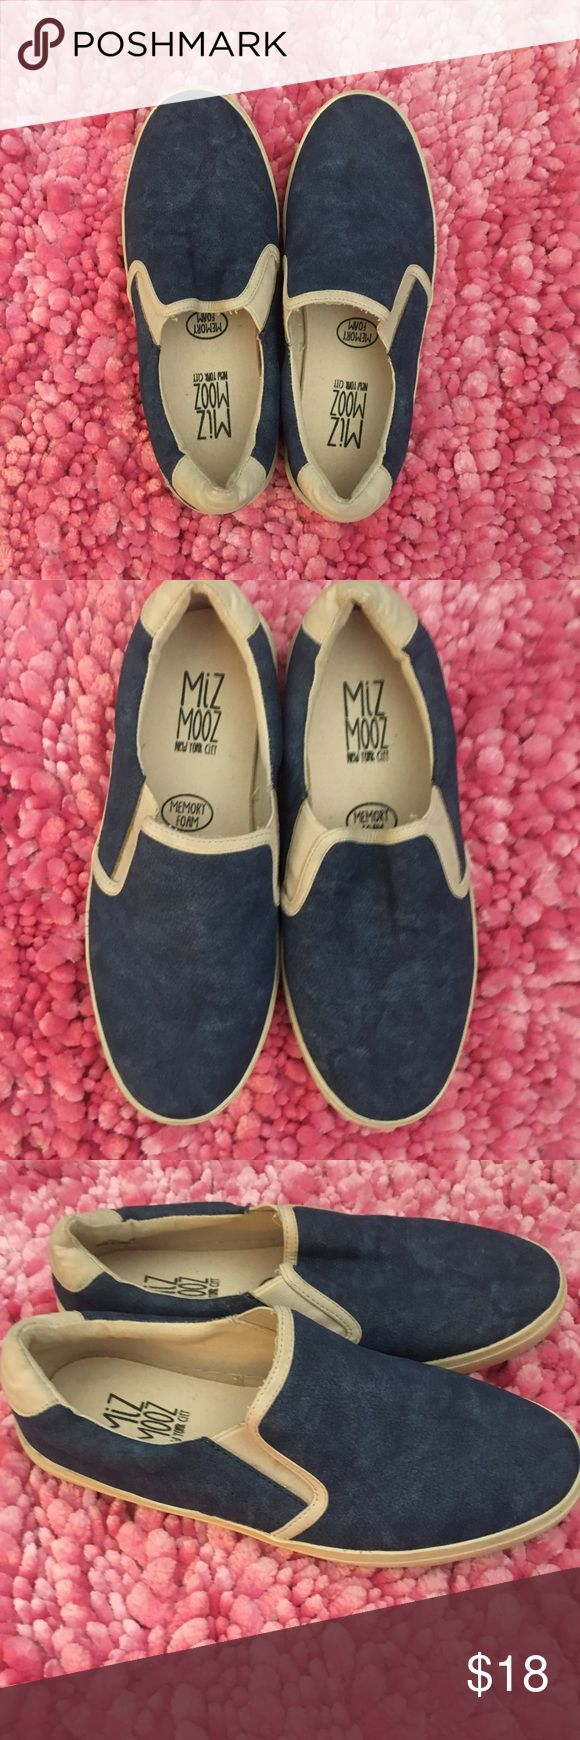 MIZ MOOZ Blue Leather Slide on Sneakers Only worn twice! Adorable MIZ MOOZ grey-ish/blue leather slide on sneakers! Size 7 women's Miz Mooz Shoes Flats & Loafers